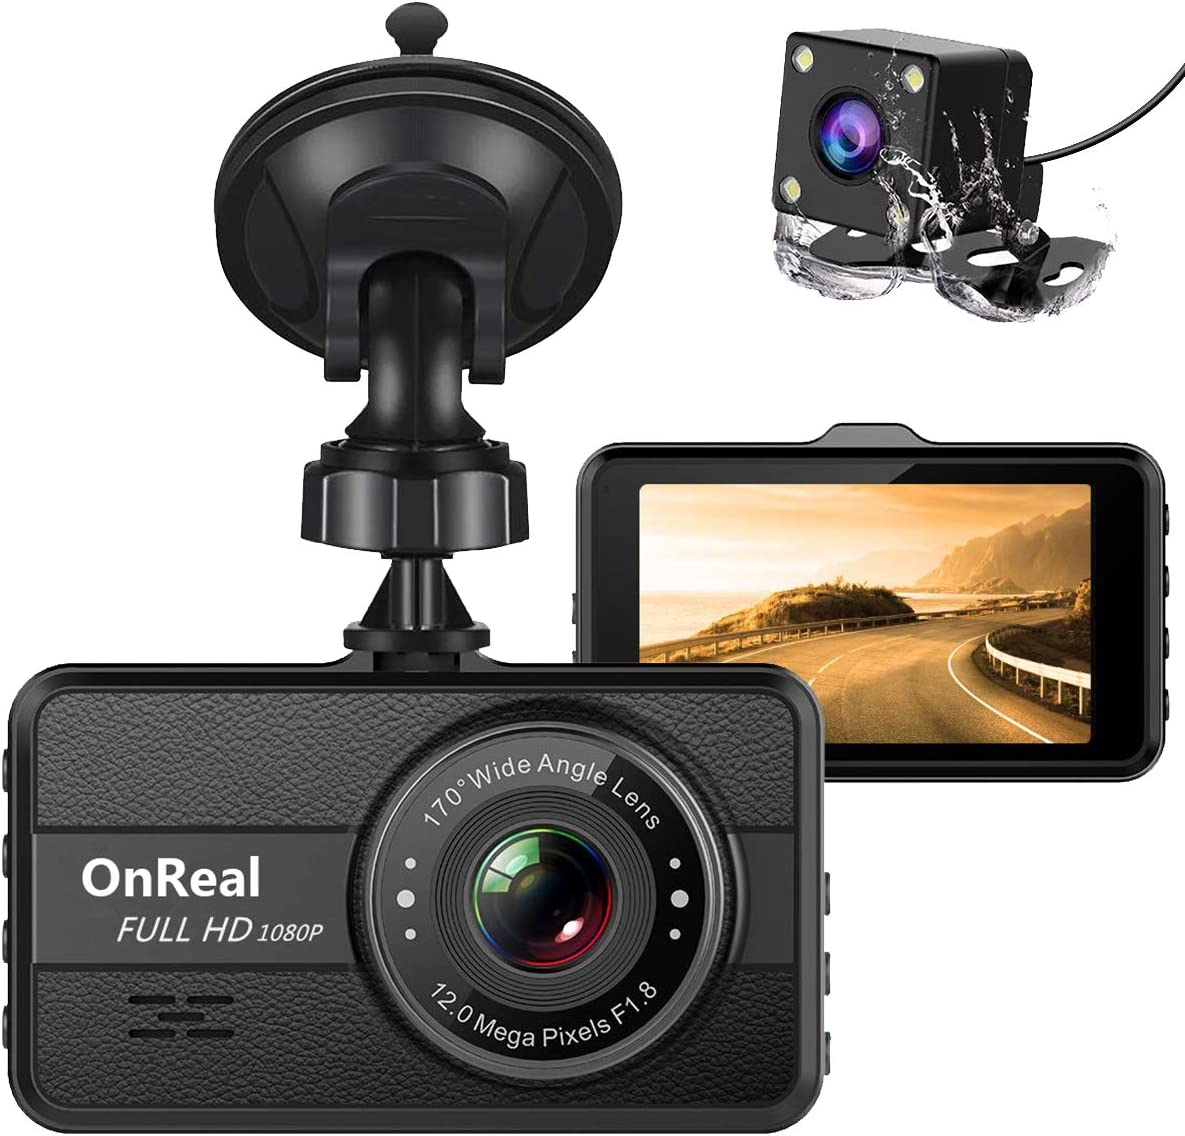 """OnReal Dual Dash Cam FHD 1080P Front and Rear Cameras 3"""" Car Dashboard Recorder with Night Vision, 170 Wide Angle, G Sensor, Parking Monitor, Motion Detection, WDR"""